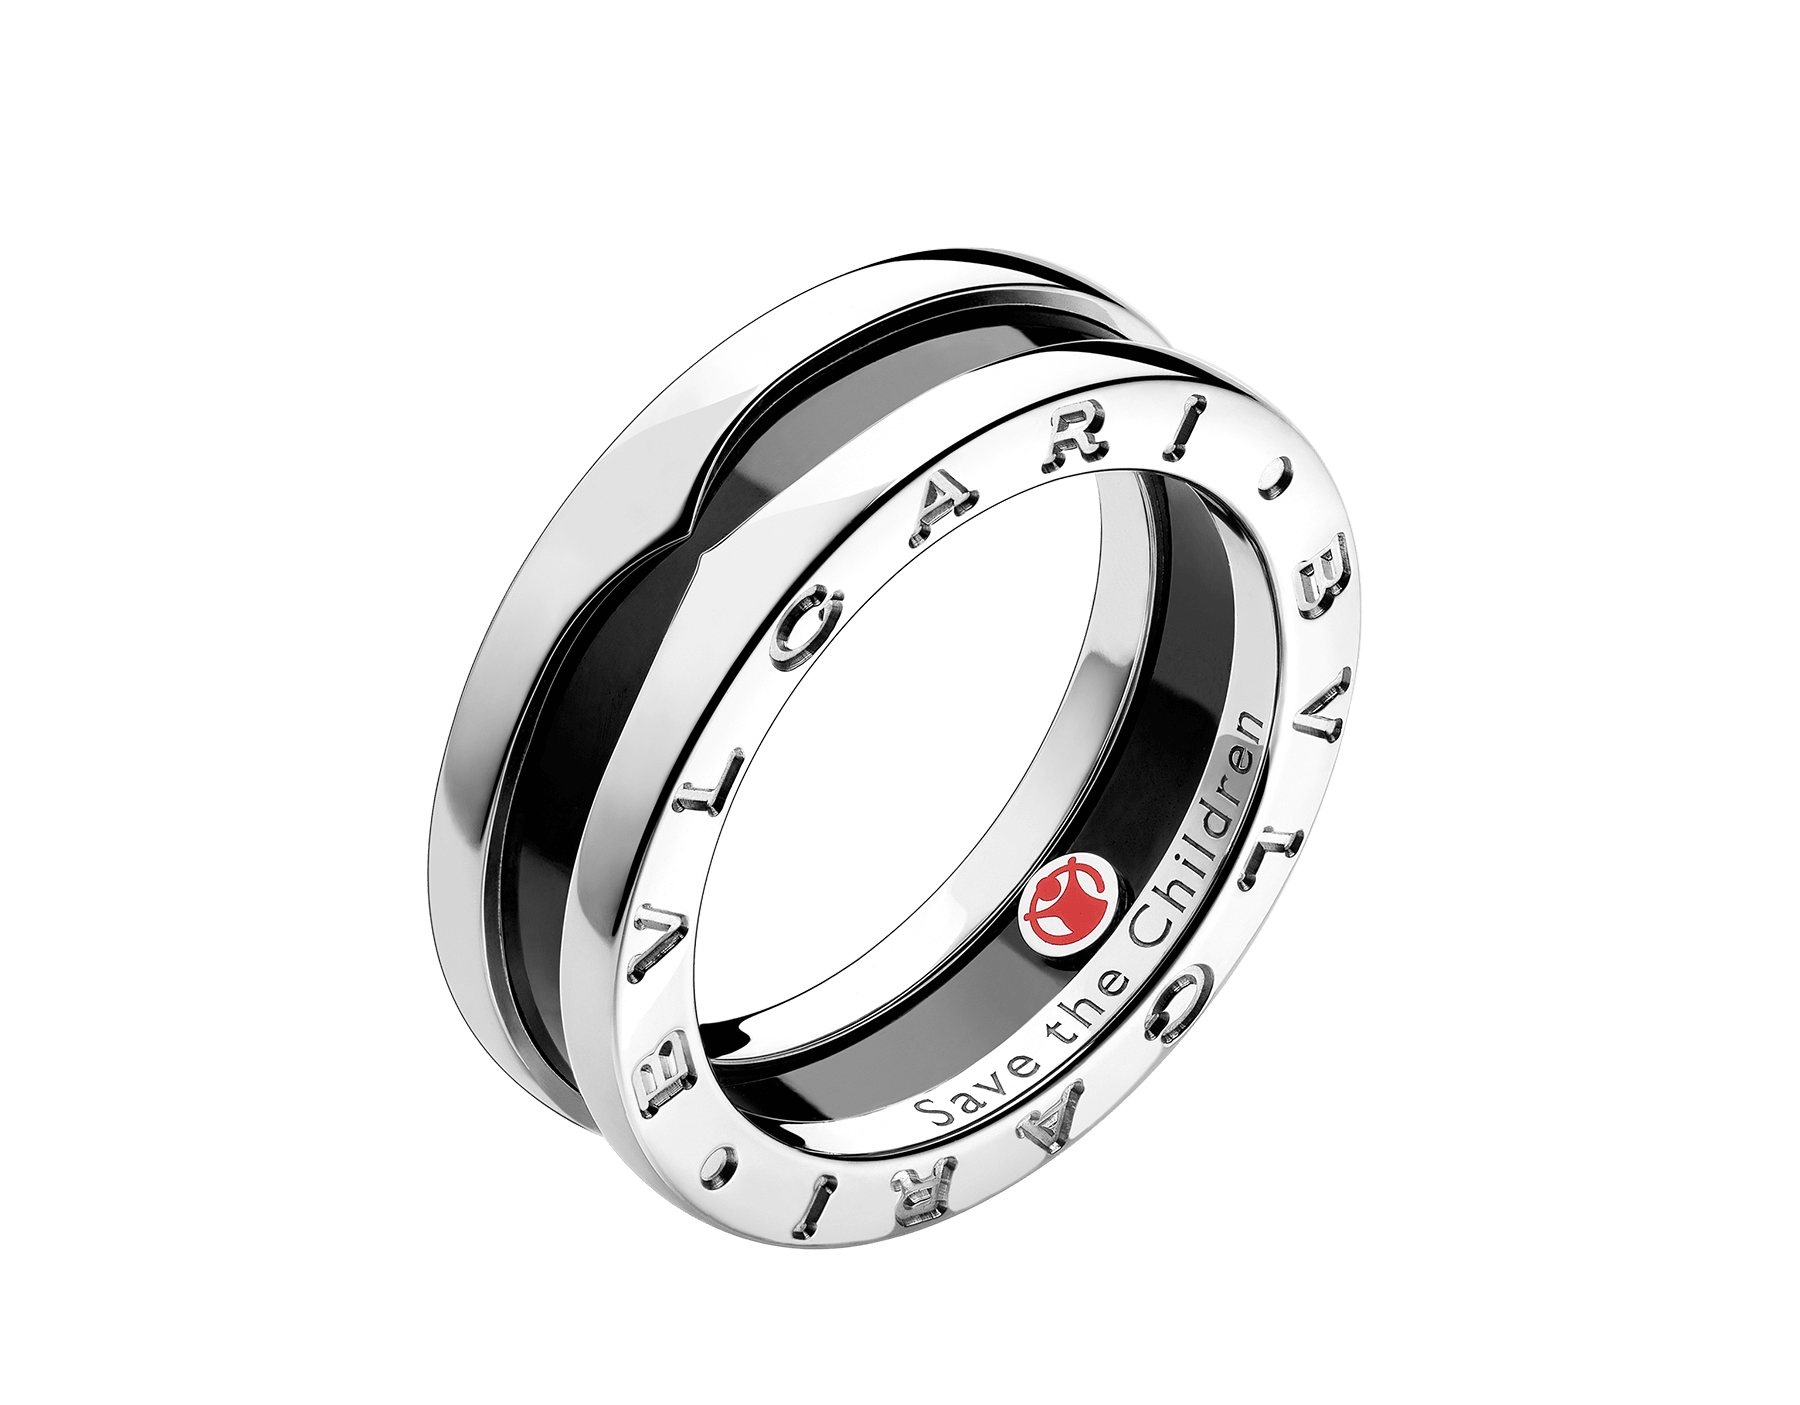 Save the Children 1-Band-Ring aus Sterlingsilber mit schwarzer Keramik AN855770 image 1